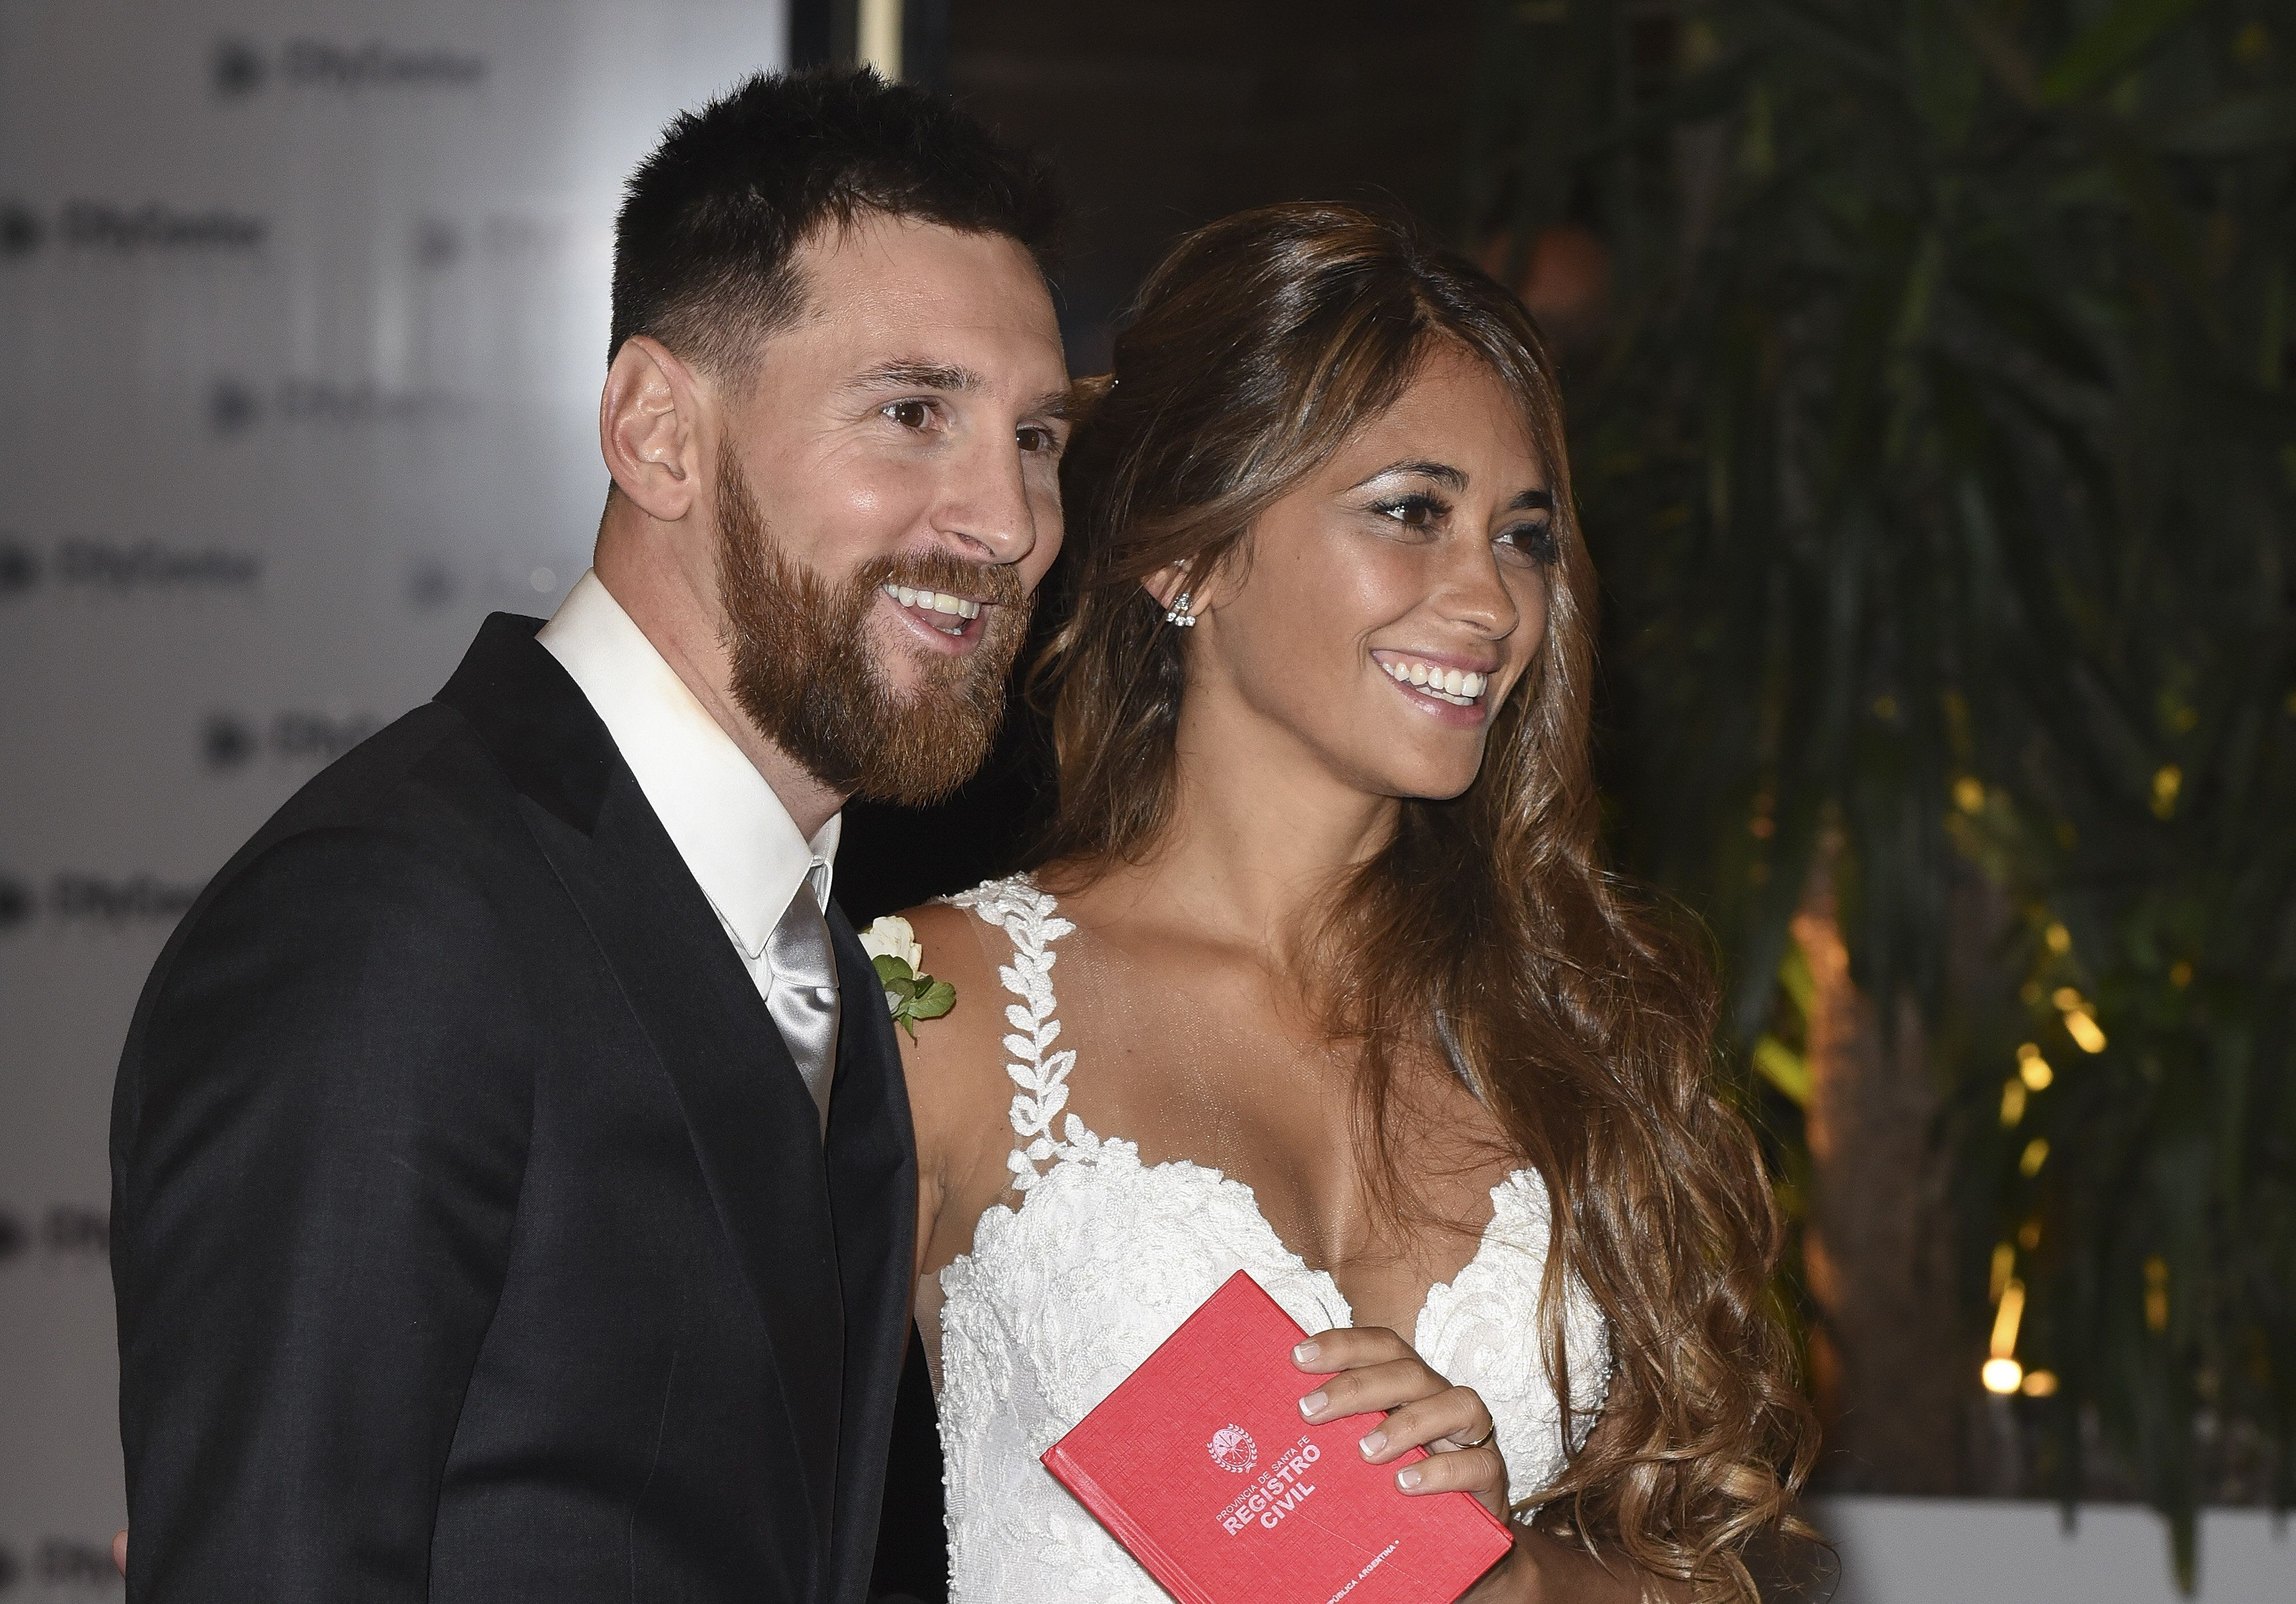 Lionel Messi and Antonela Roccuzzo greet the press after their civil wedding ceremony at the City Center...